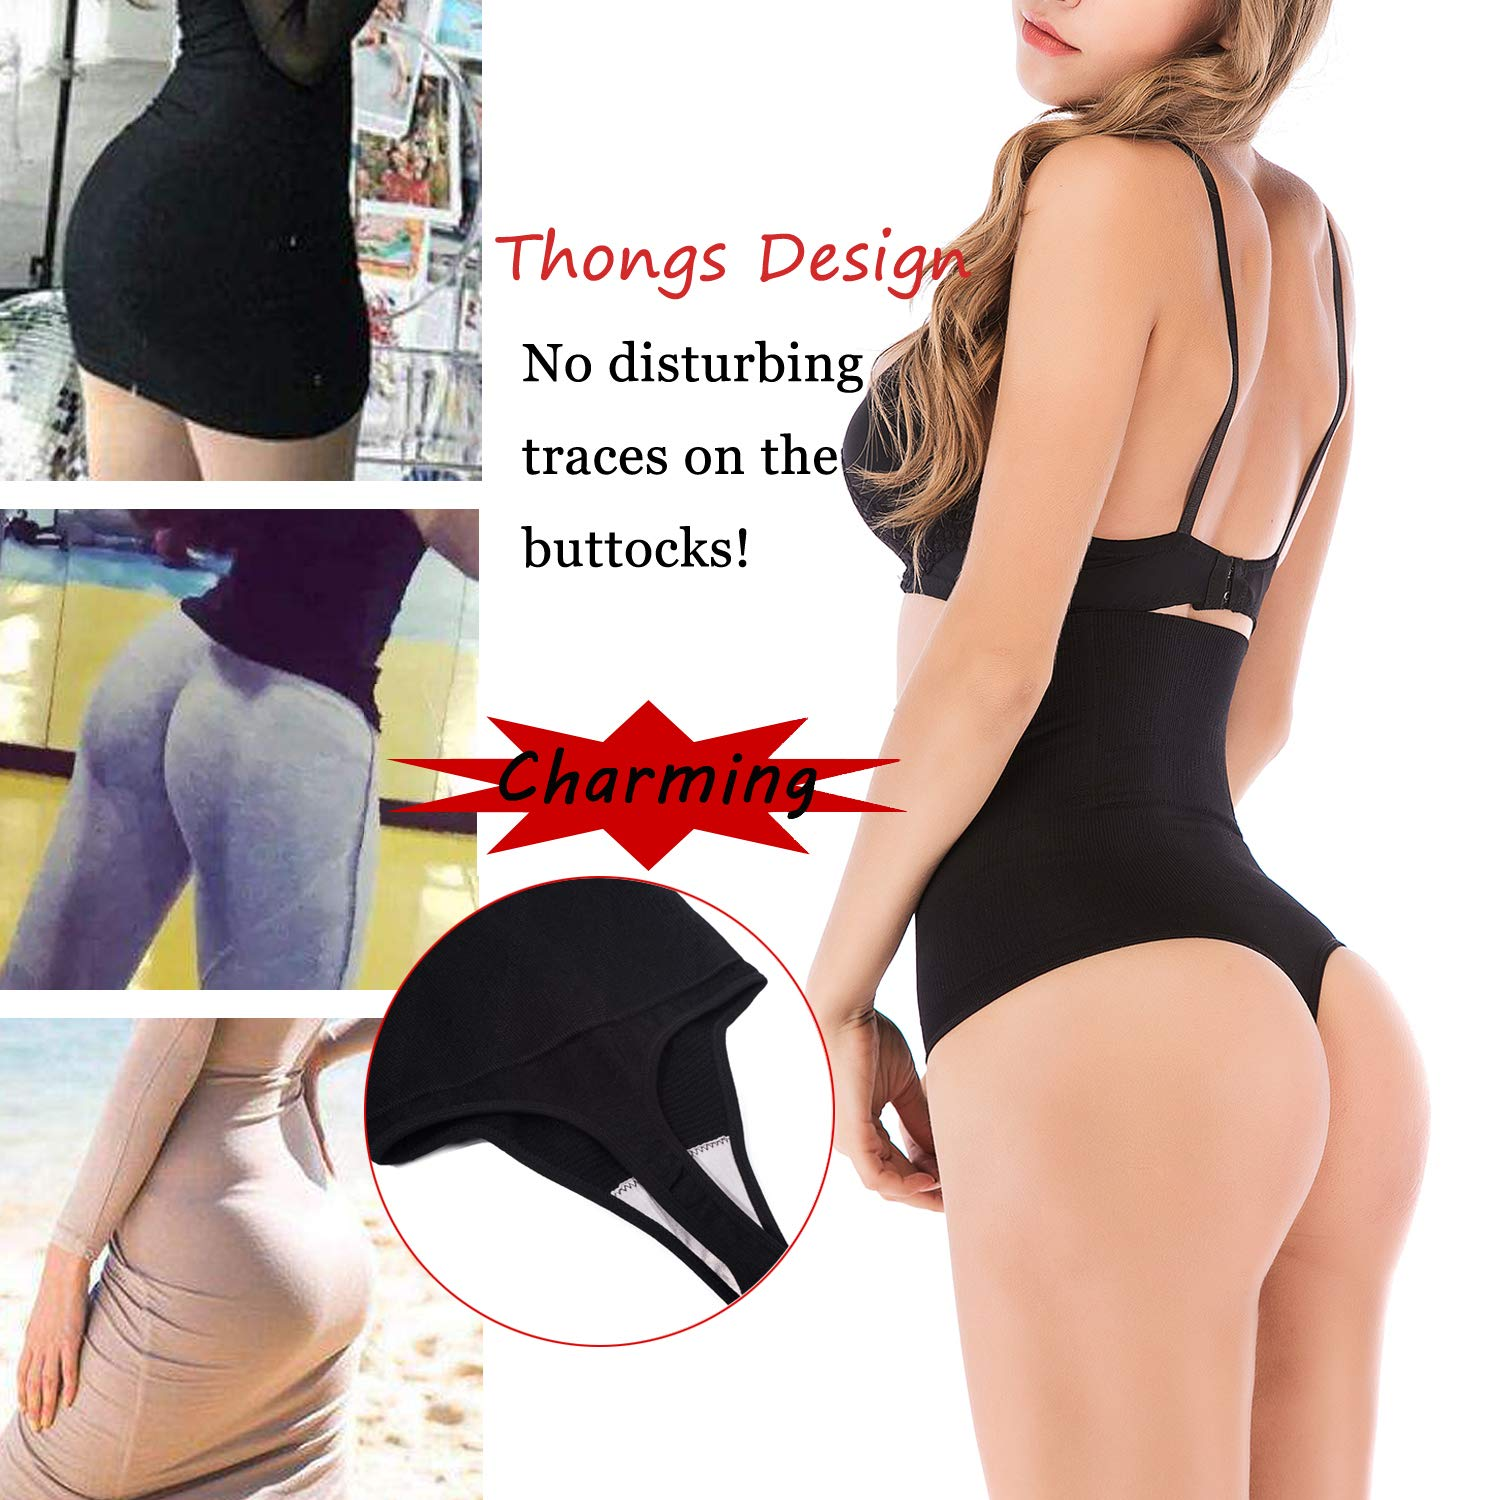 OMG/_Shop Womens Basic High-Waist Shapewear Waist Trainer Seamless Thongs Tummy Control Panties Underwear